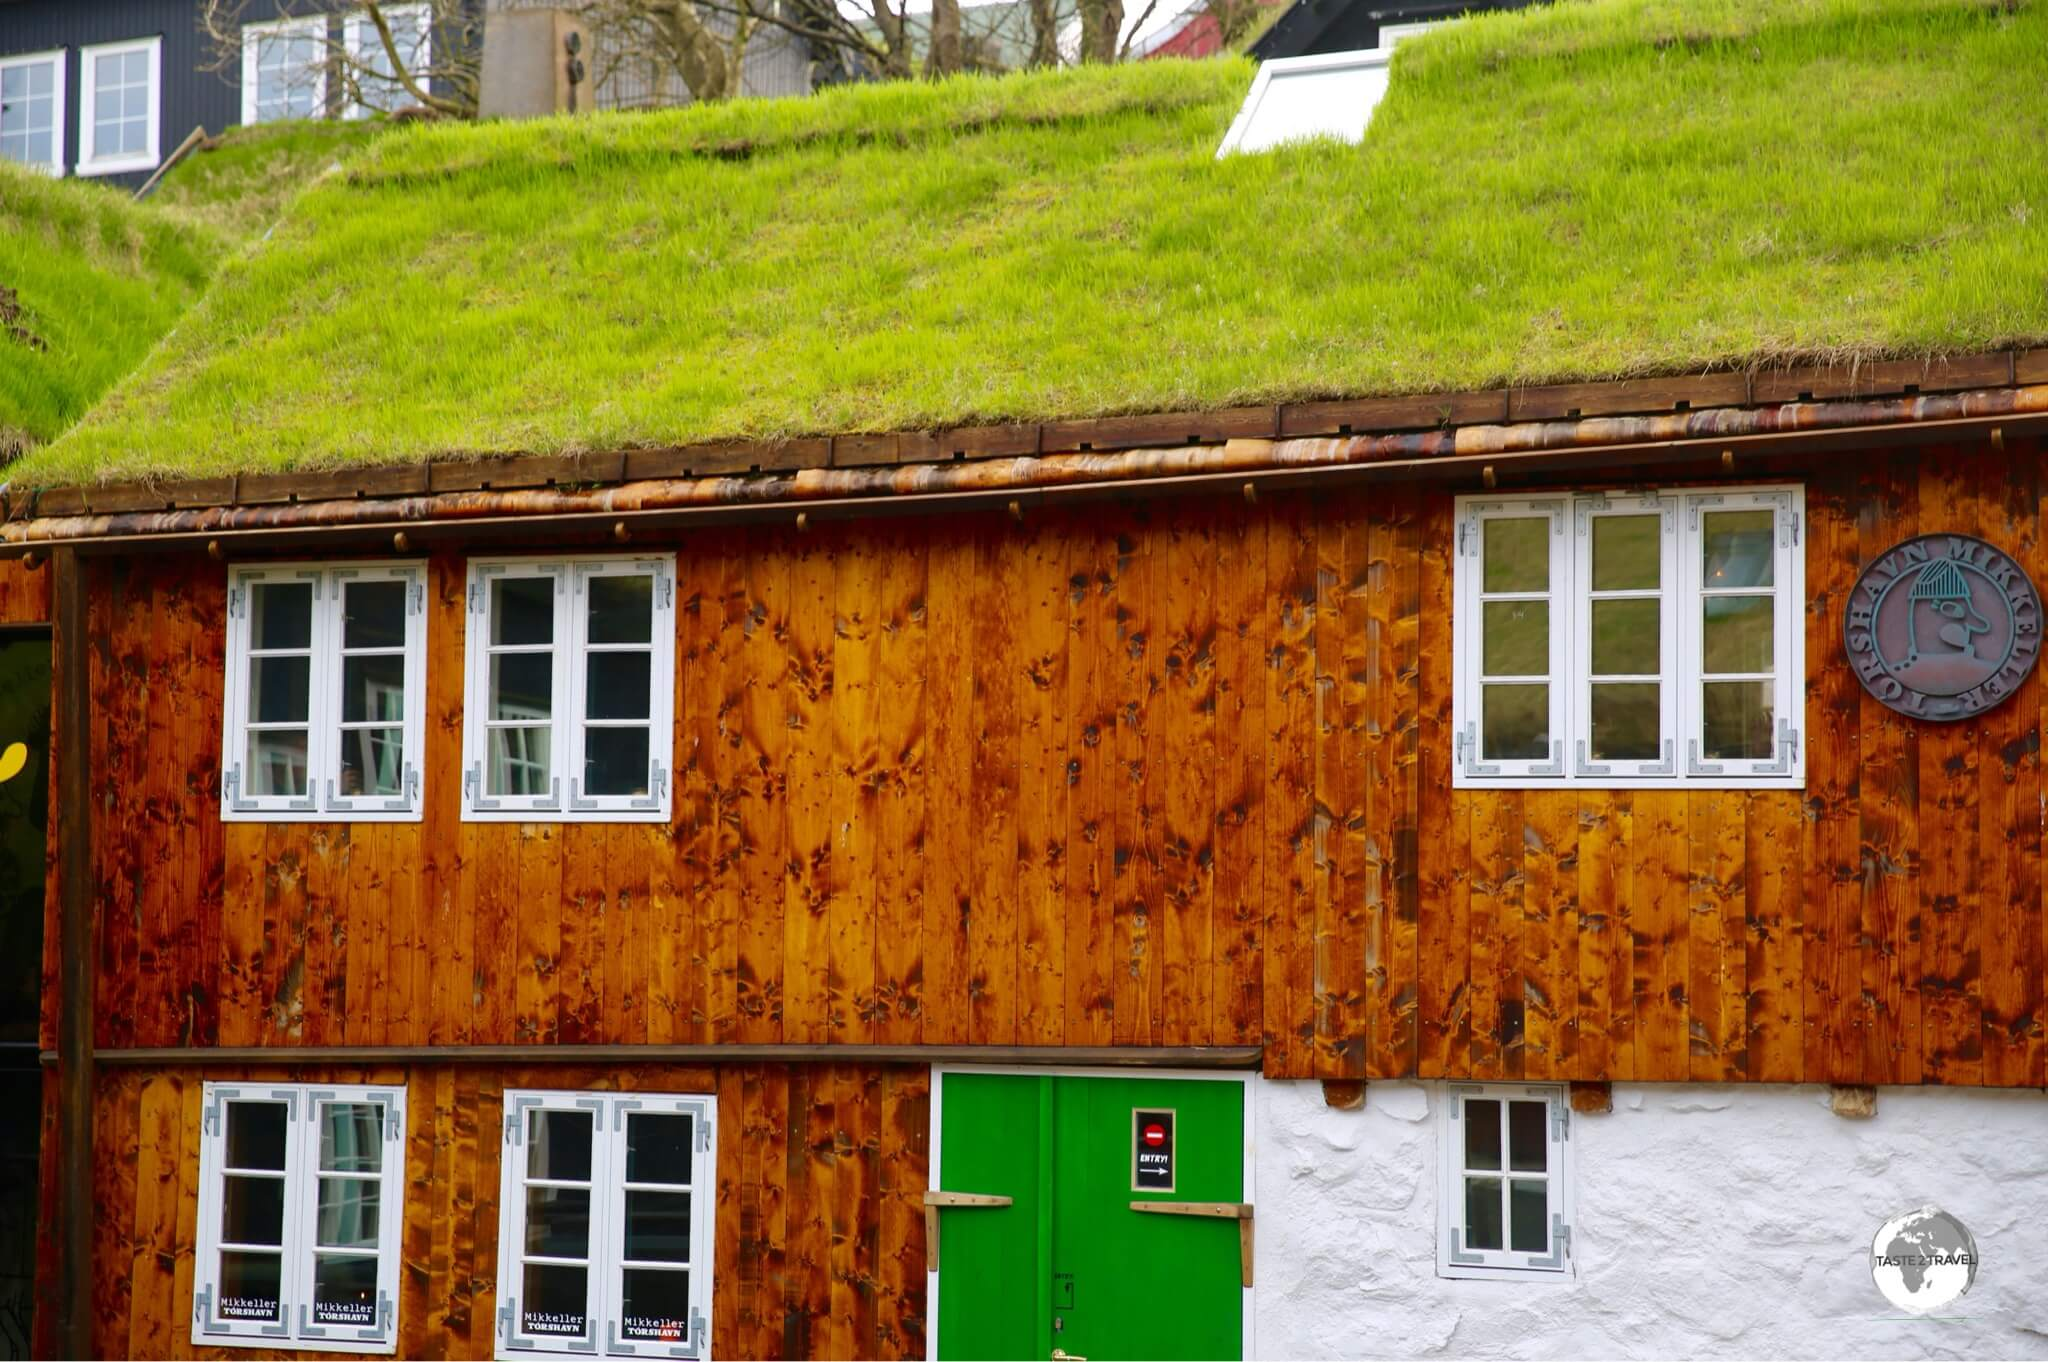 Houses in the Tinganes district of Tórshavn. Grass on the roof serves as insulation against the long cold winters.